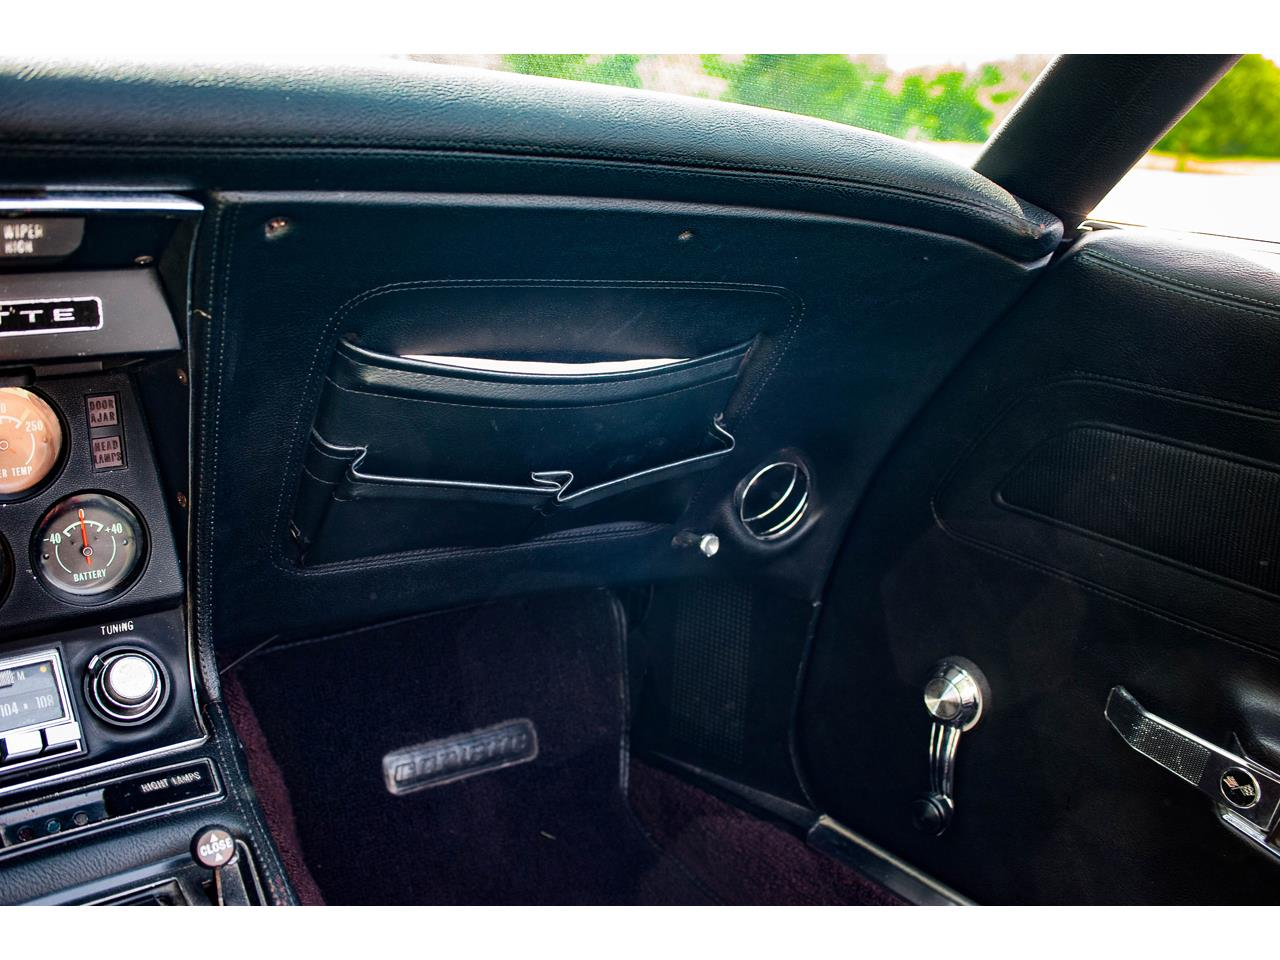 Large Picture of '71 Chevrolet Corvette - $40,500.00 Offered by Gateway Classic Cars - St. Louis - QB9M